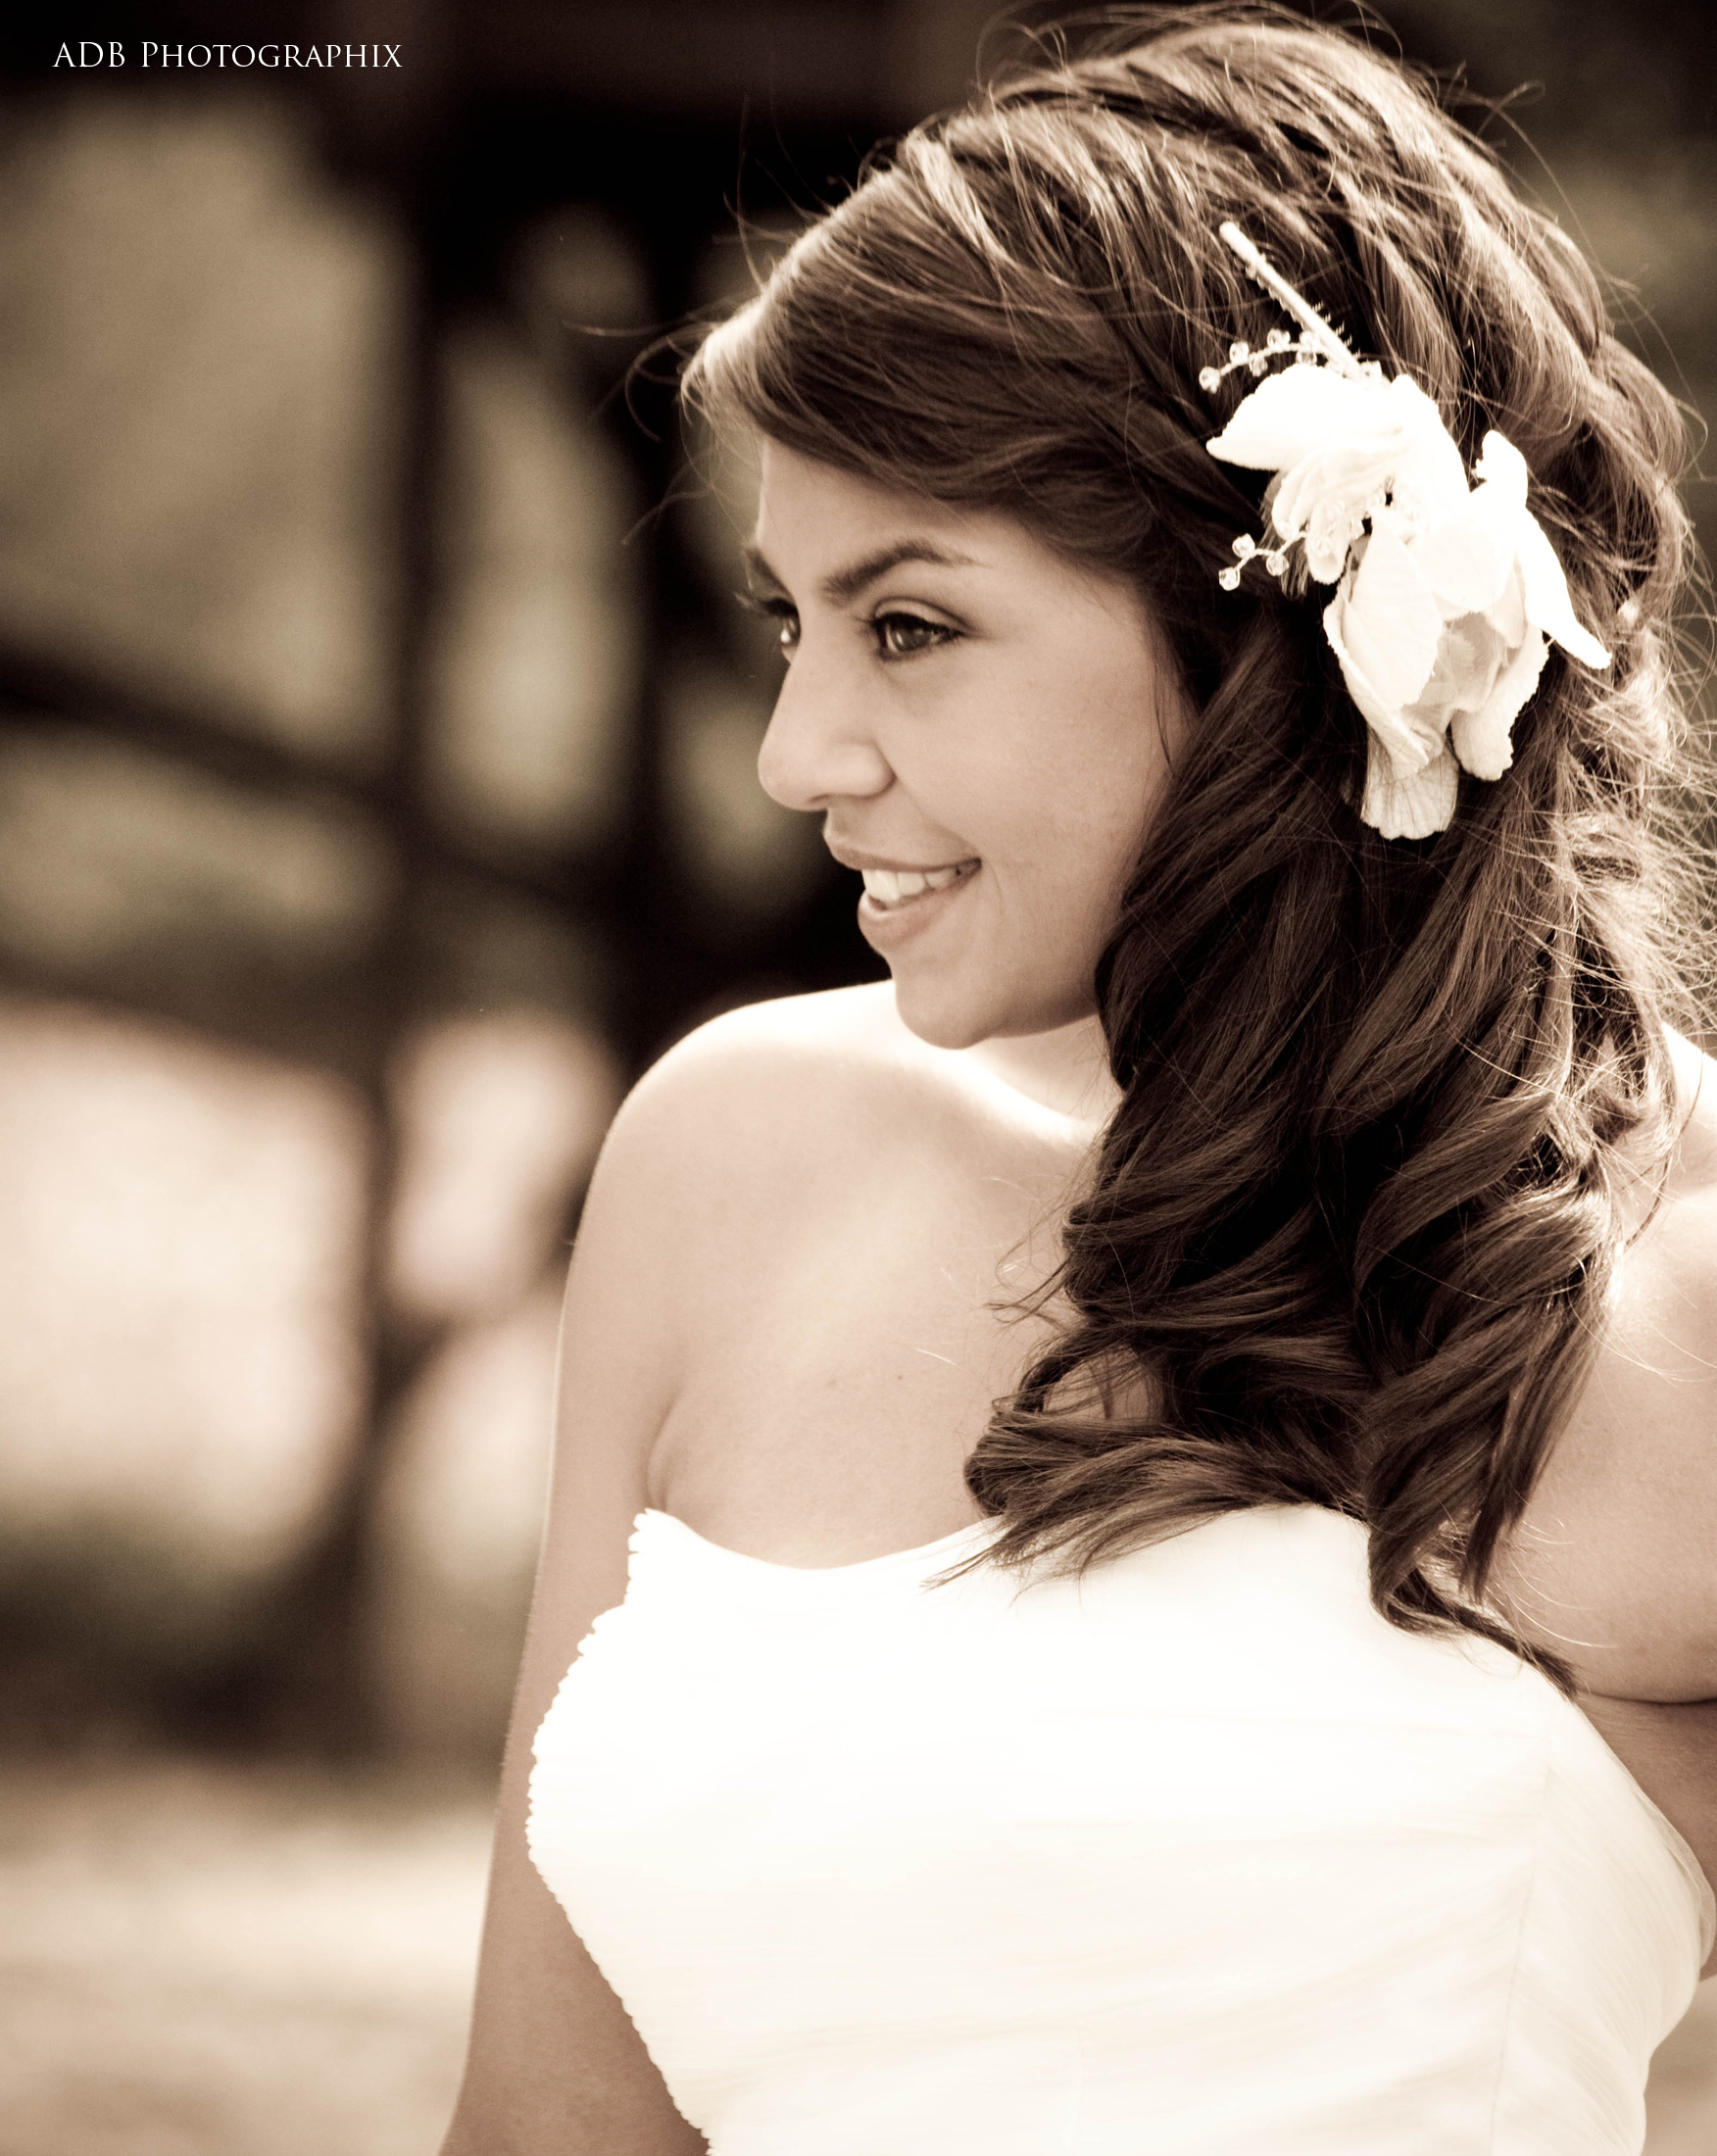 single twist hairstyle : Side Swept, Prom Hairstyles, Bridal Hairstyles, Swept Hairstyles, Hair ...